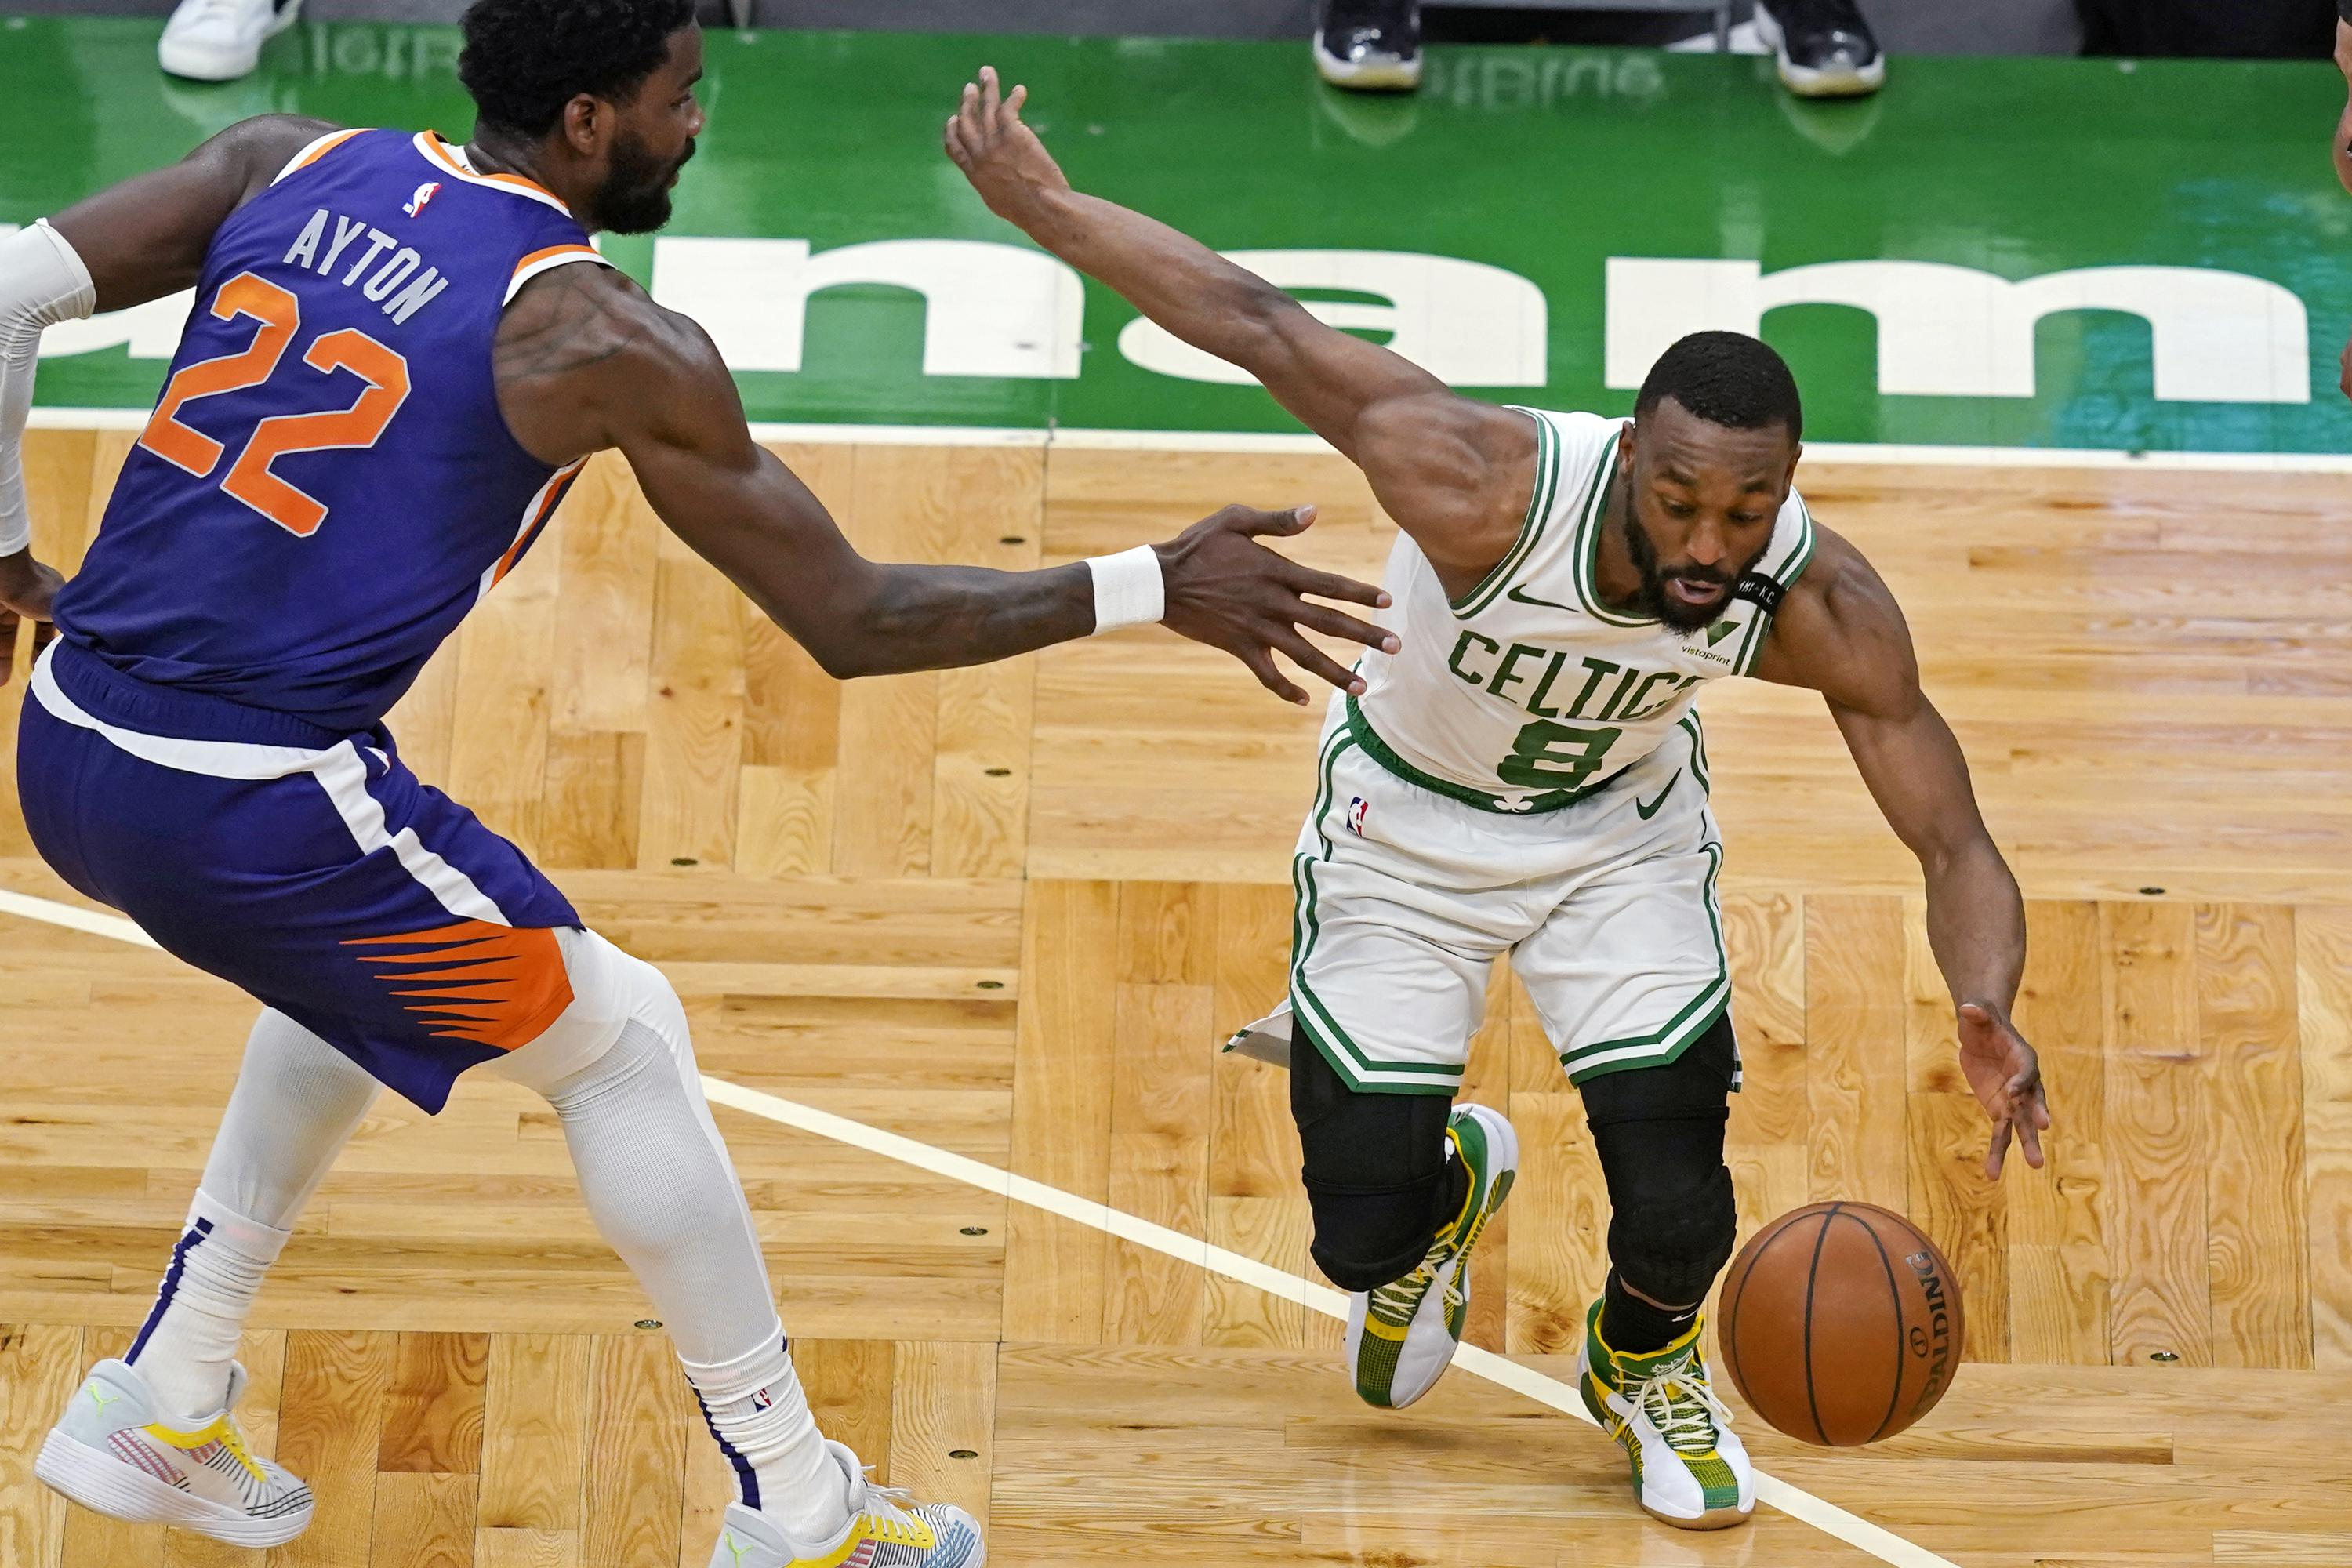 Walker ties season high with 32 points, Celtics beat Suns